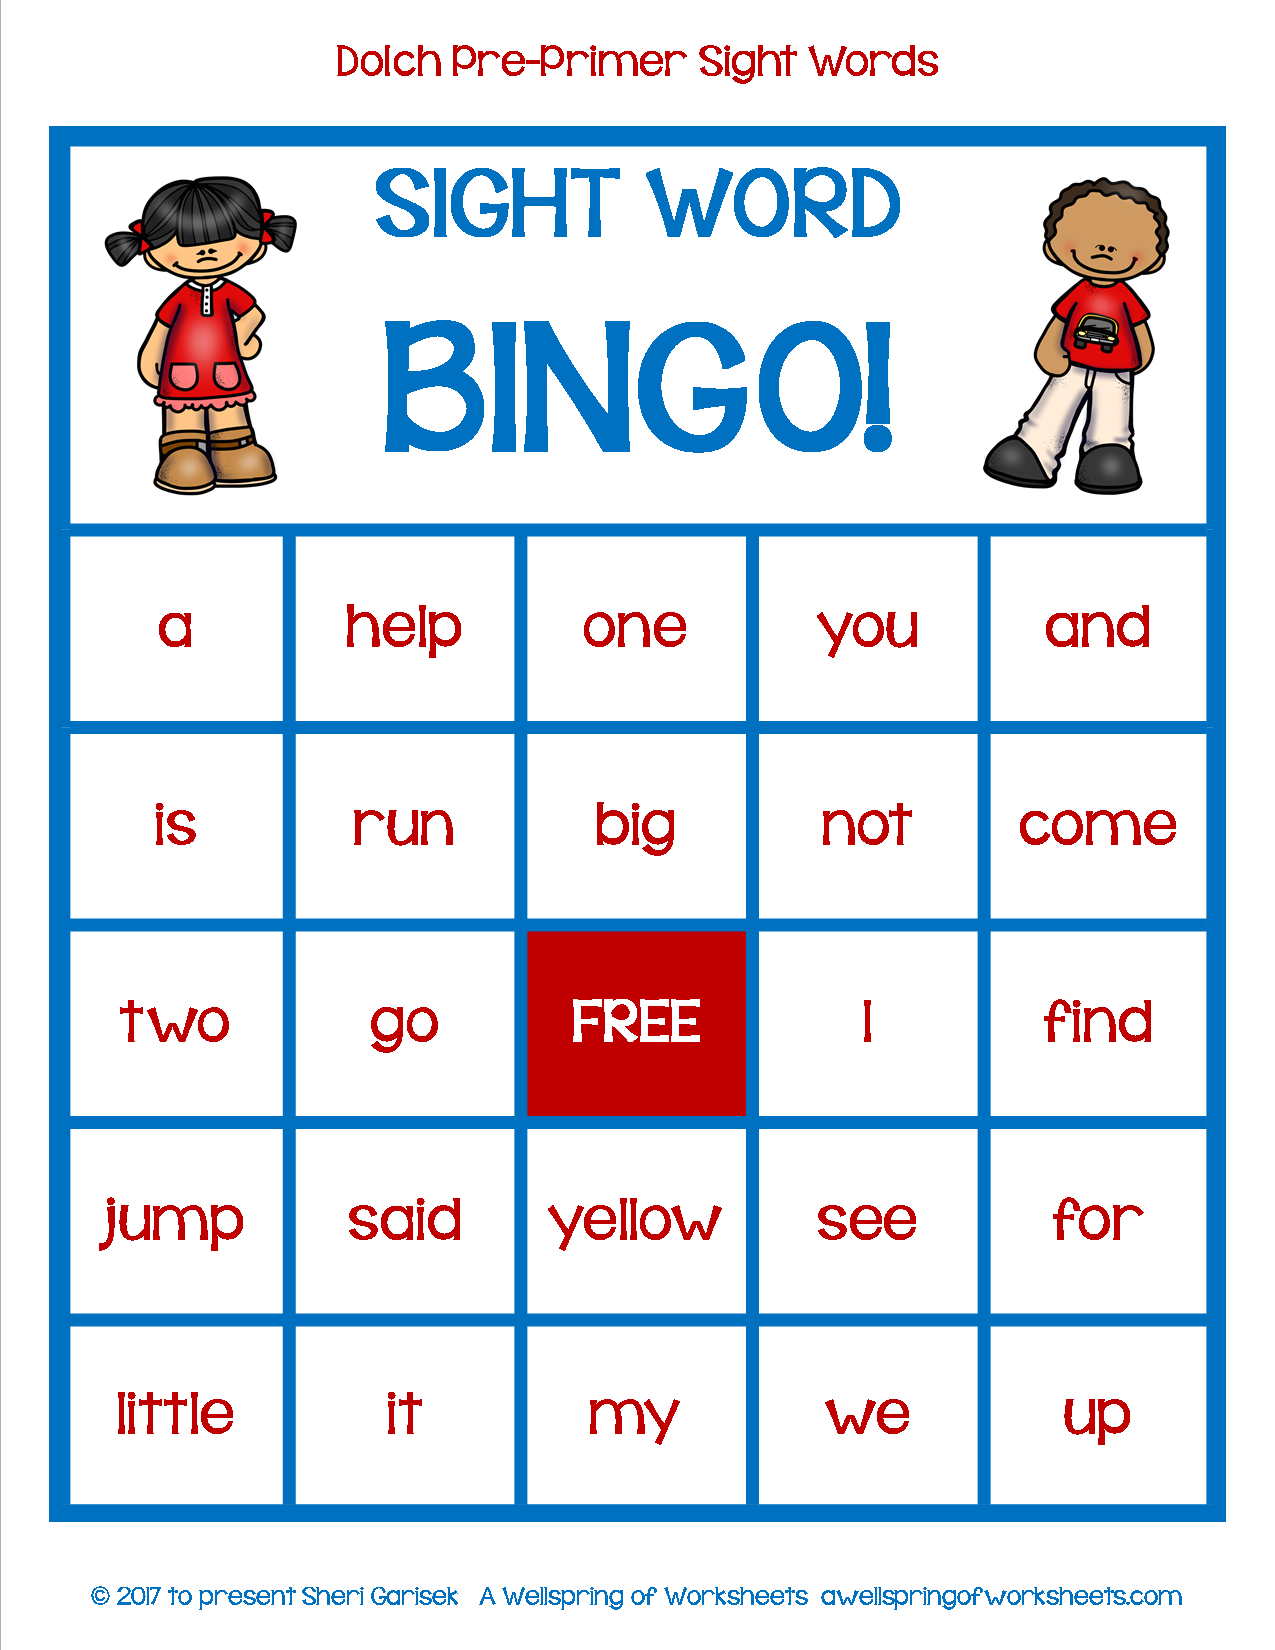 Dolch Pre-Primer Sight Word Game - Bingo